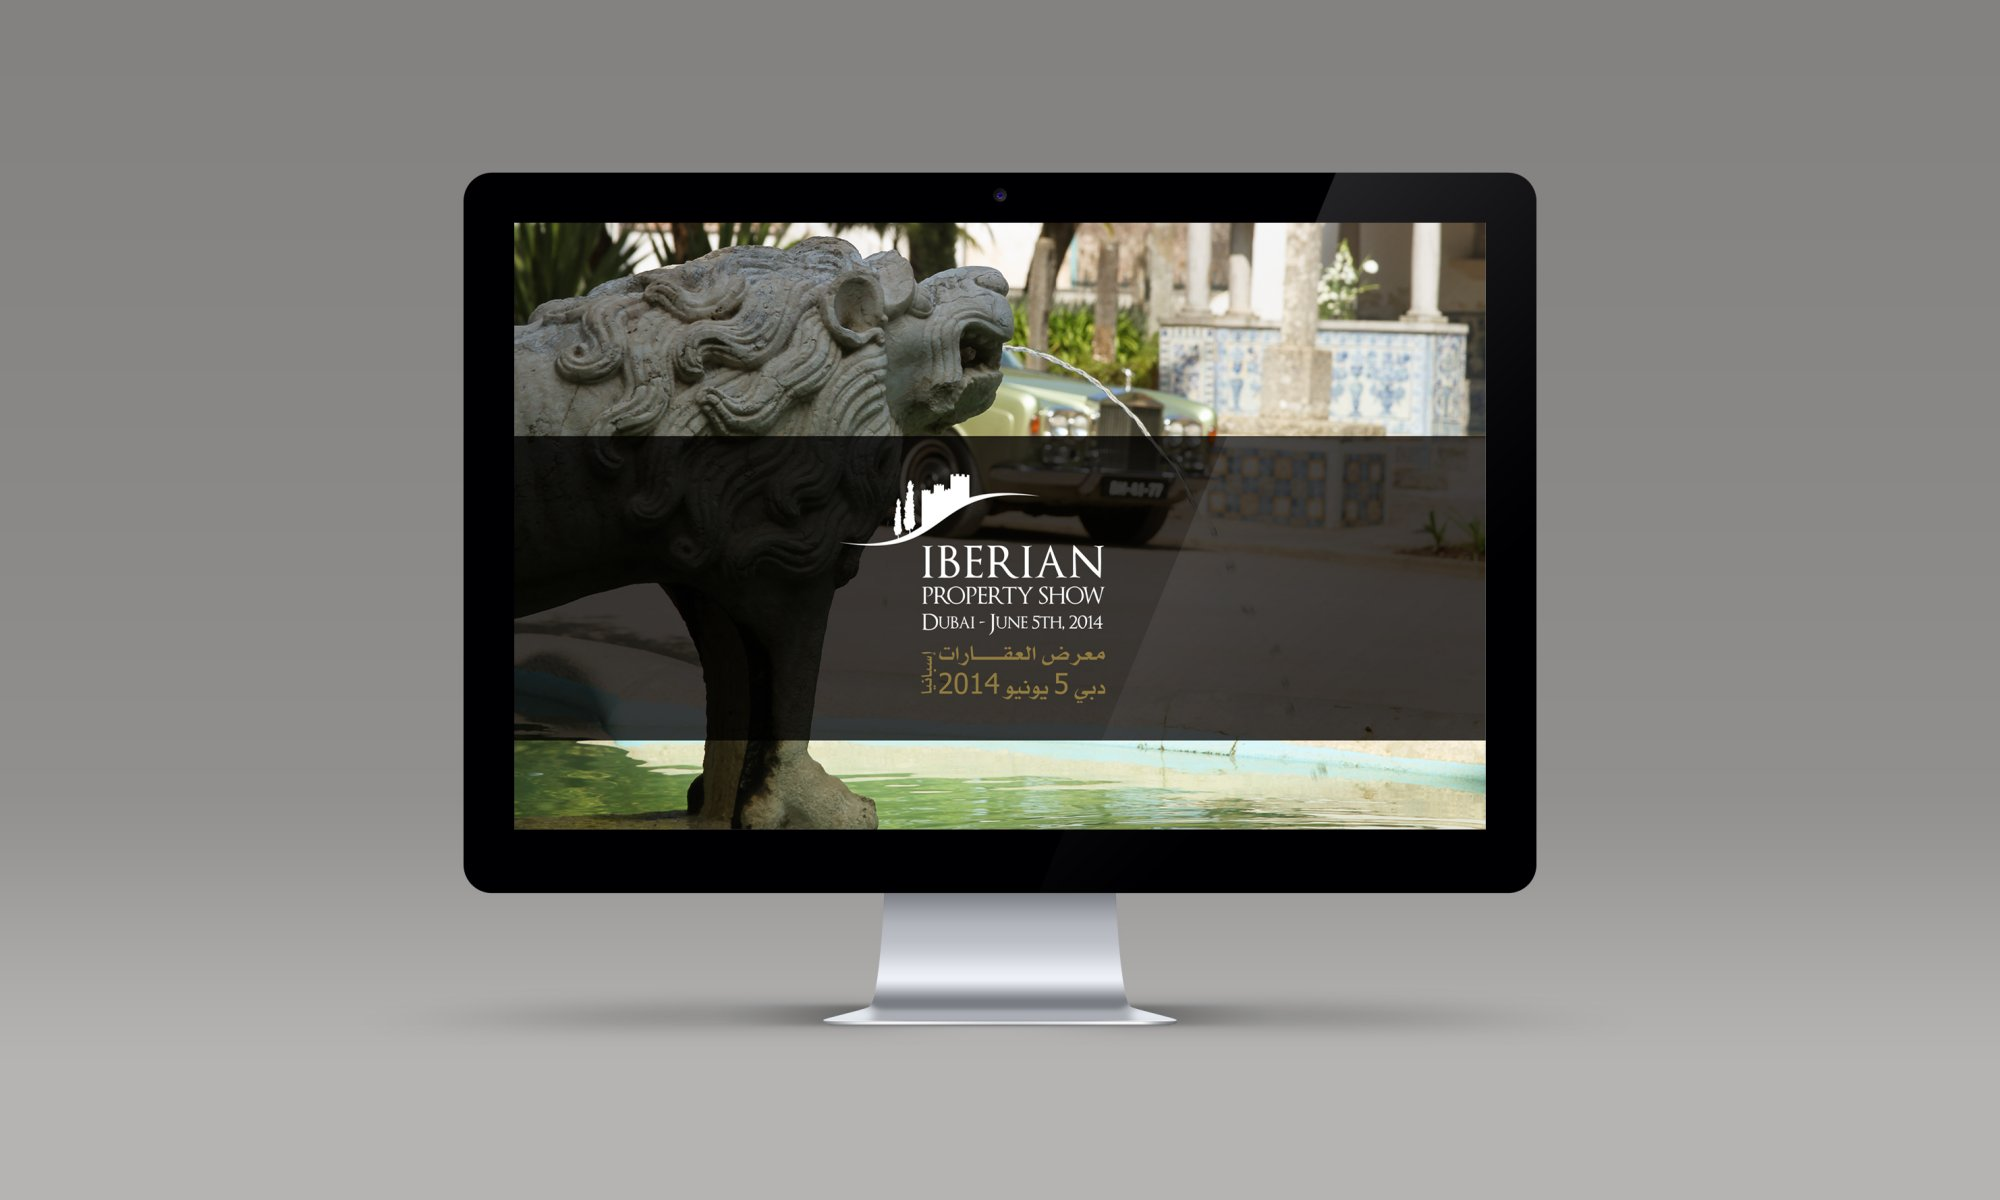 Iberian Property Show - Web Design